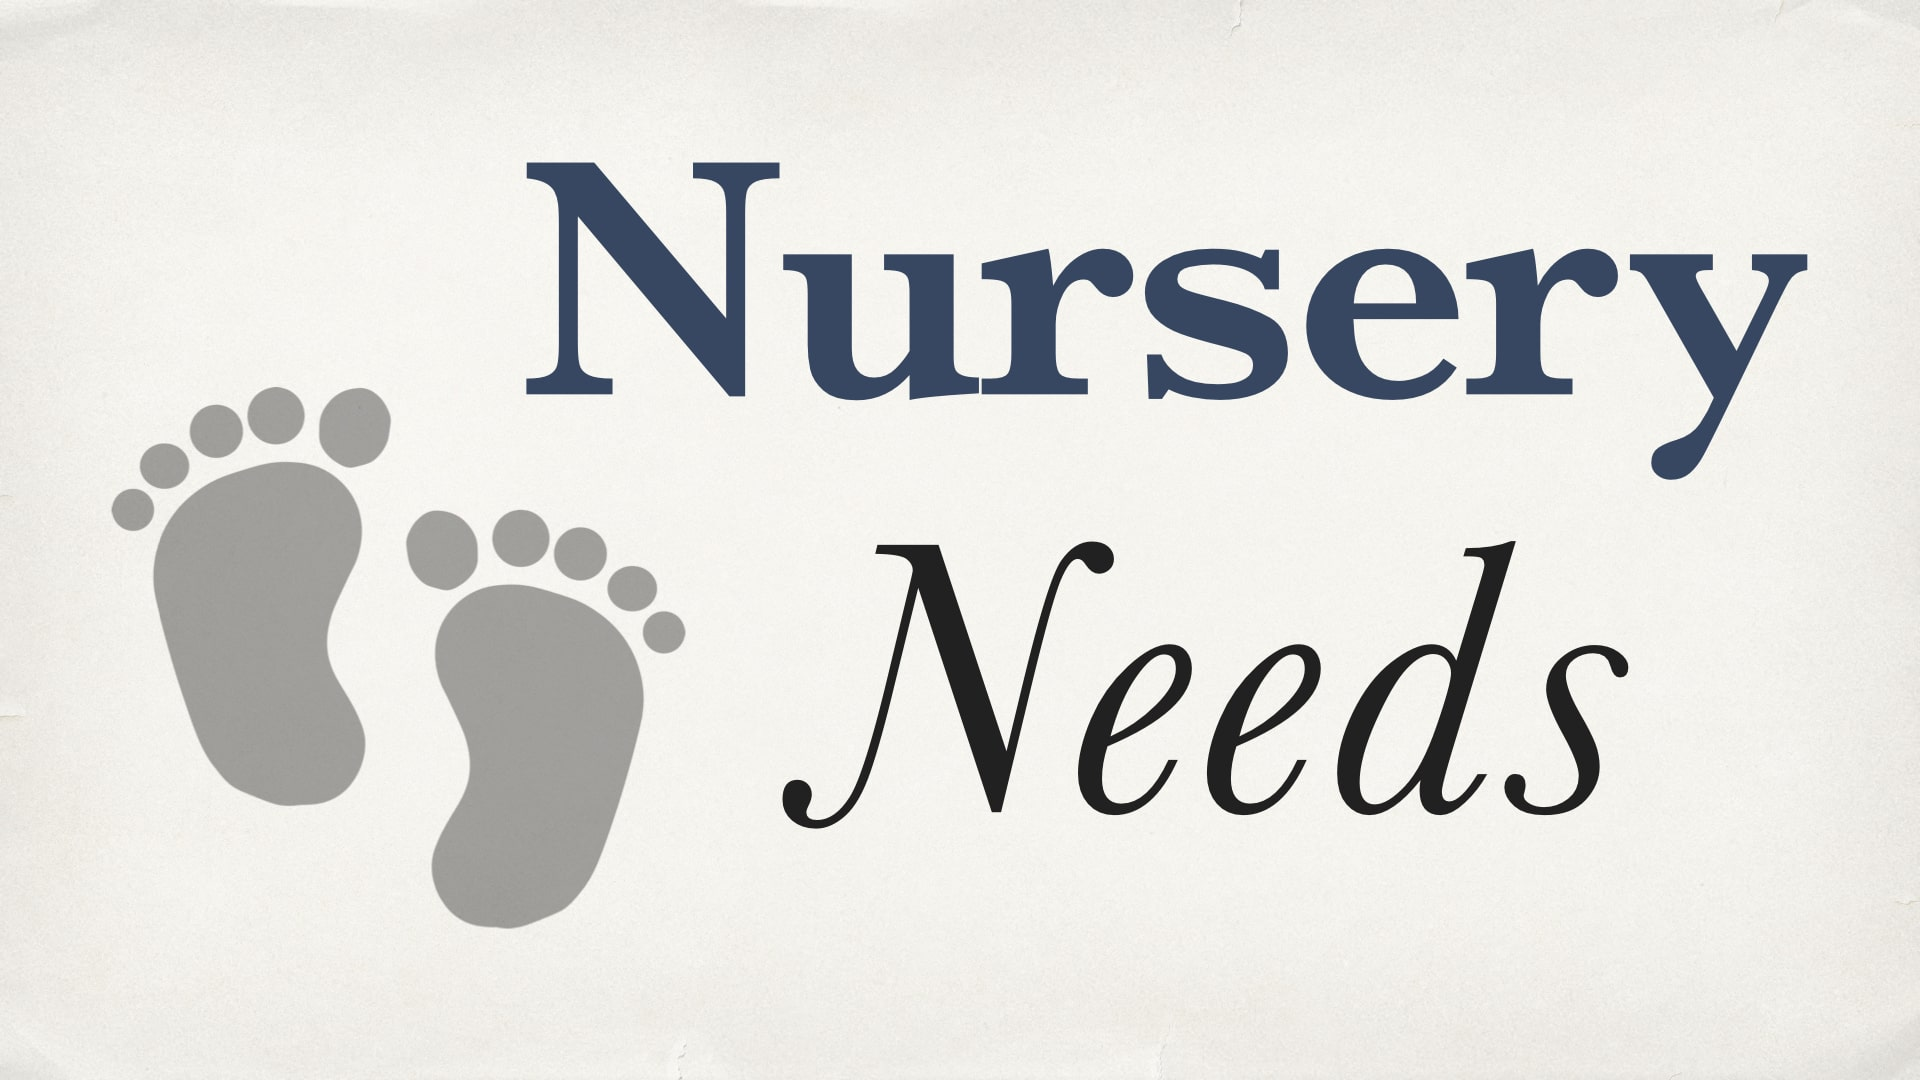 RLC Nursery Needs